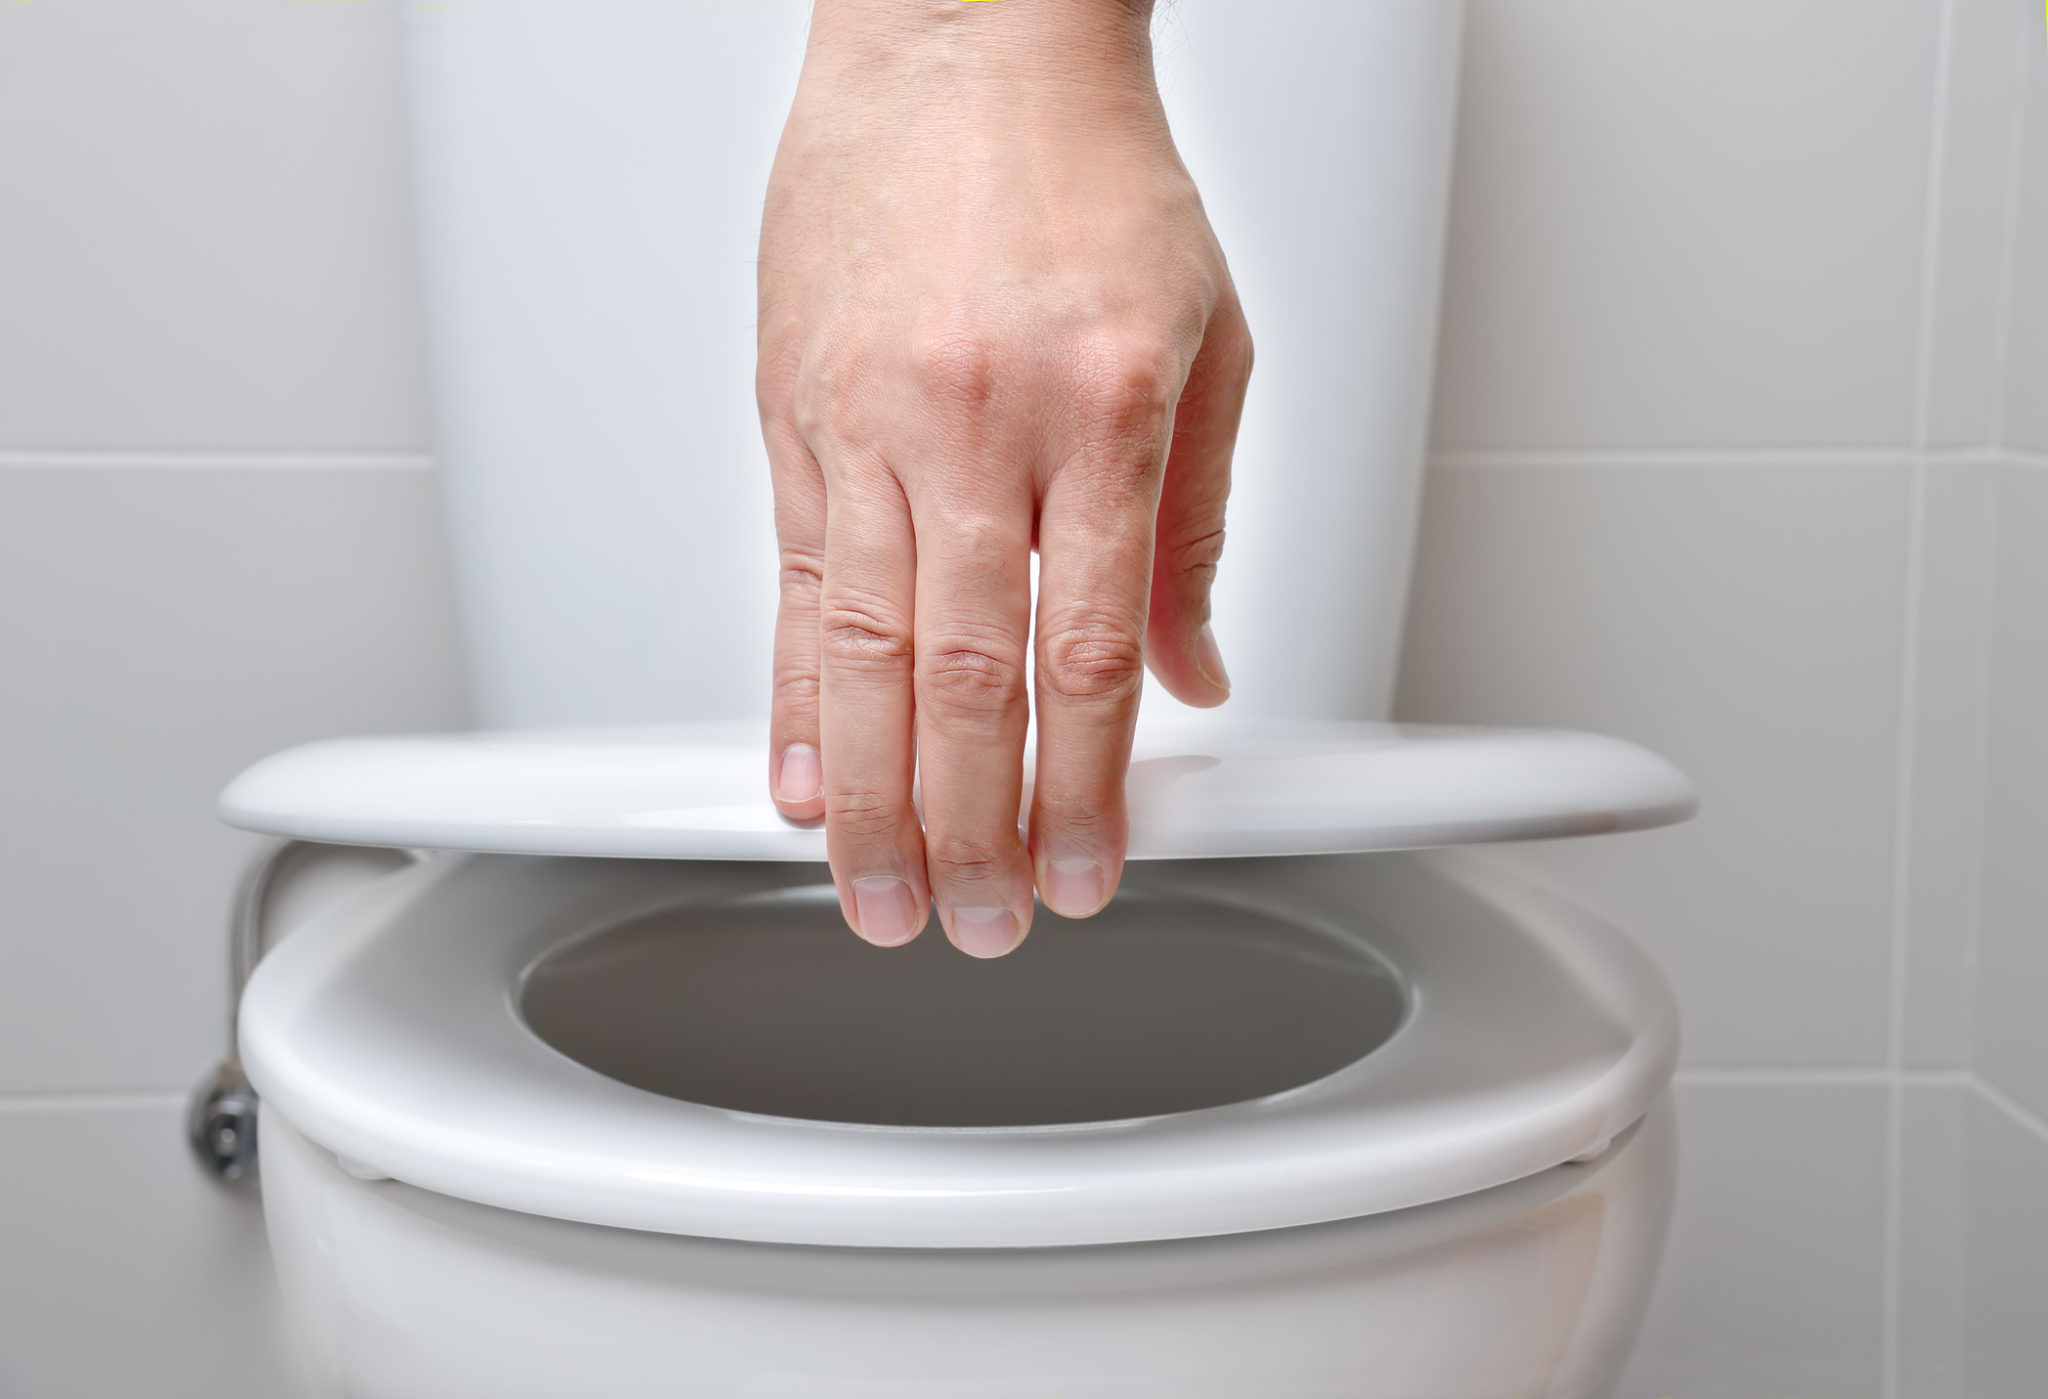 opening the toilet